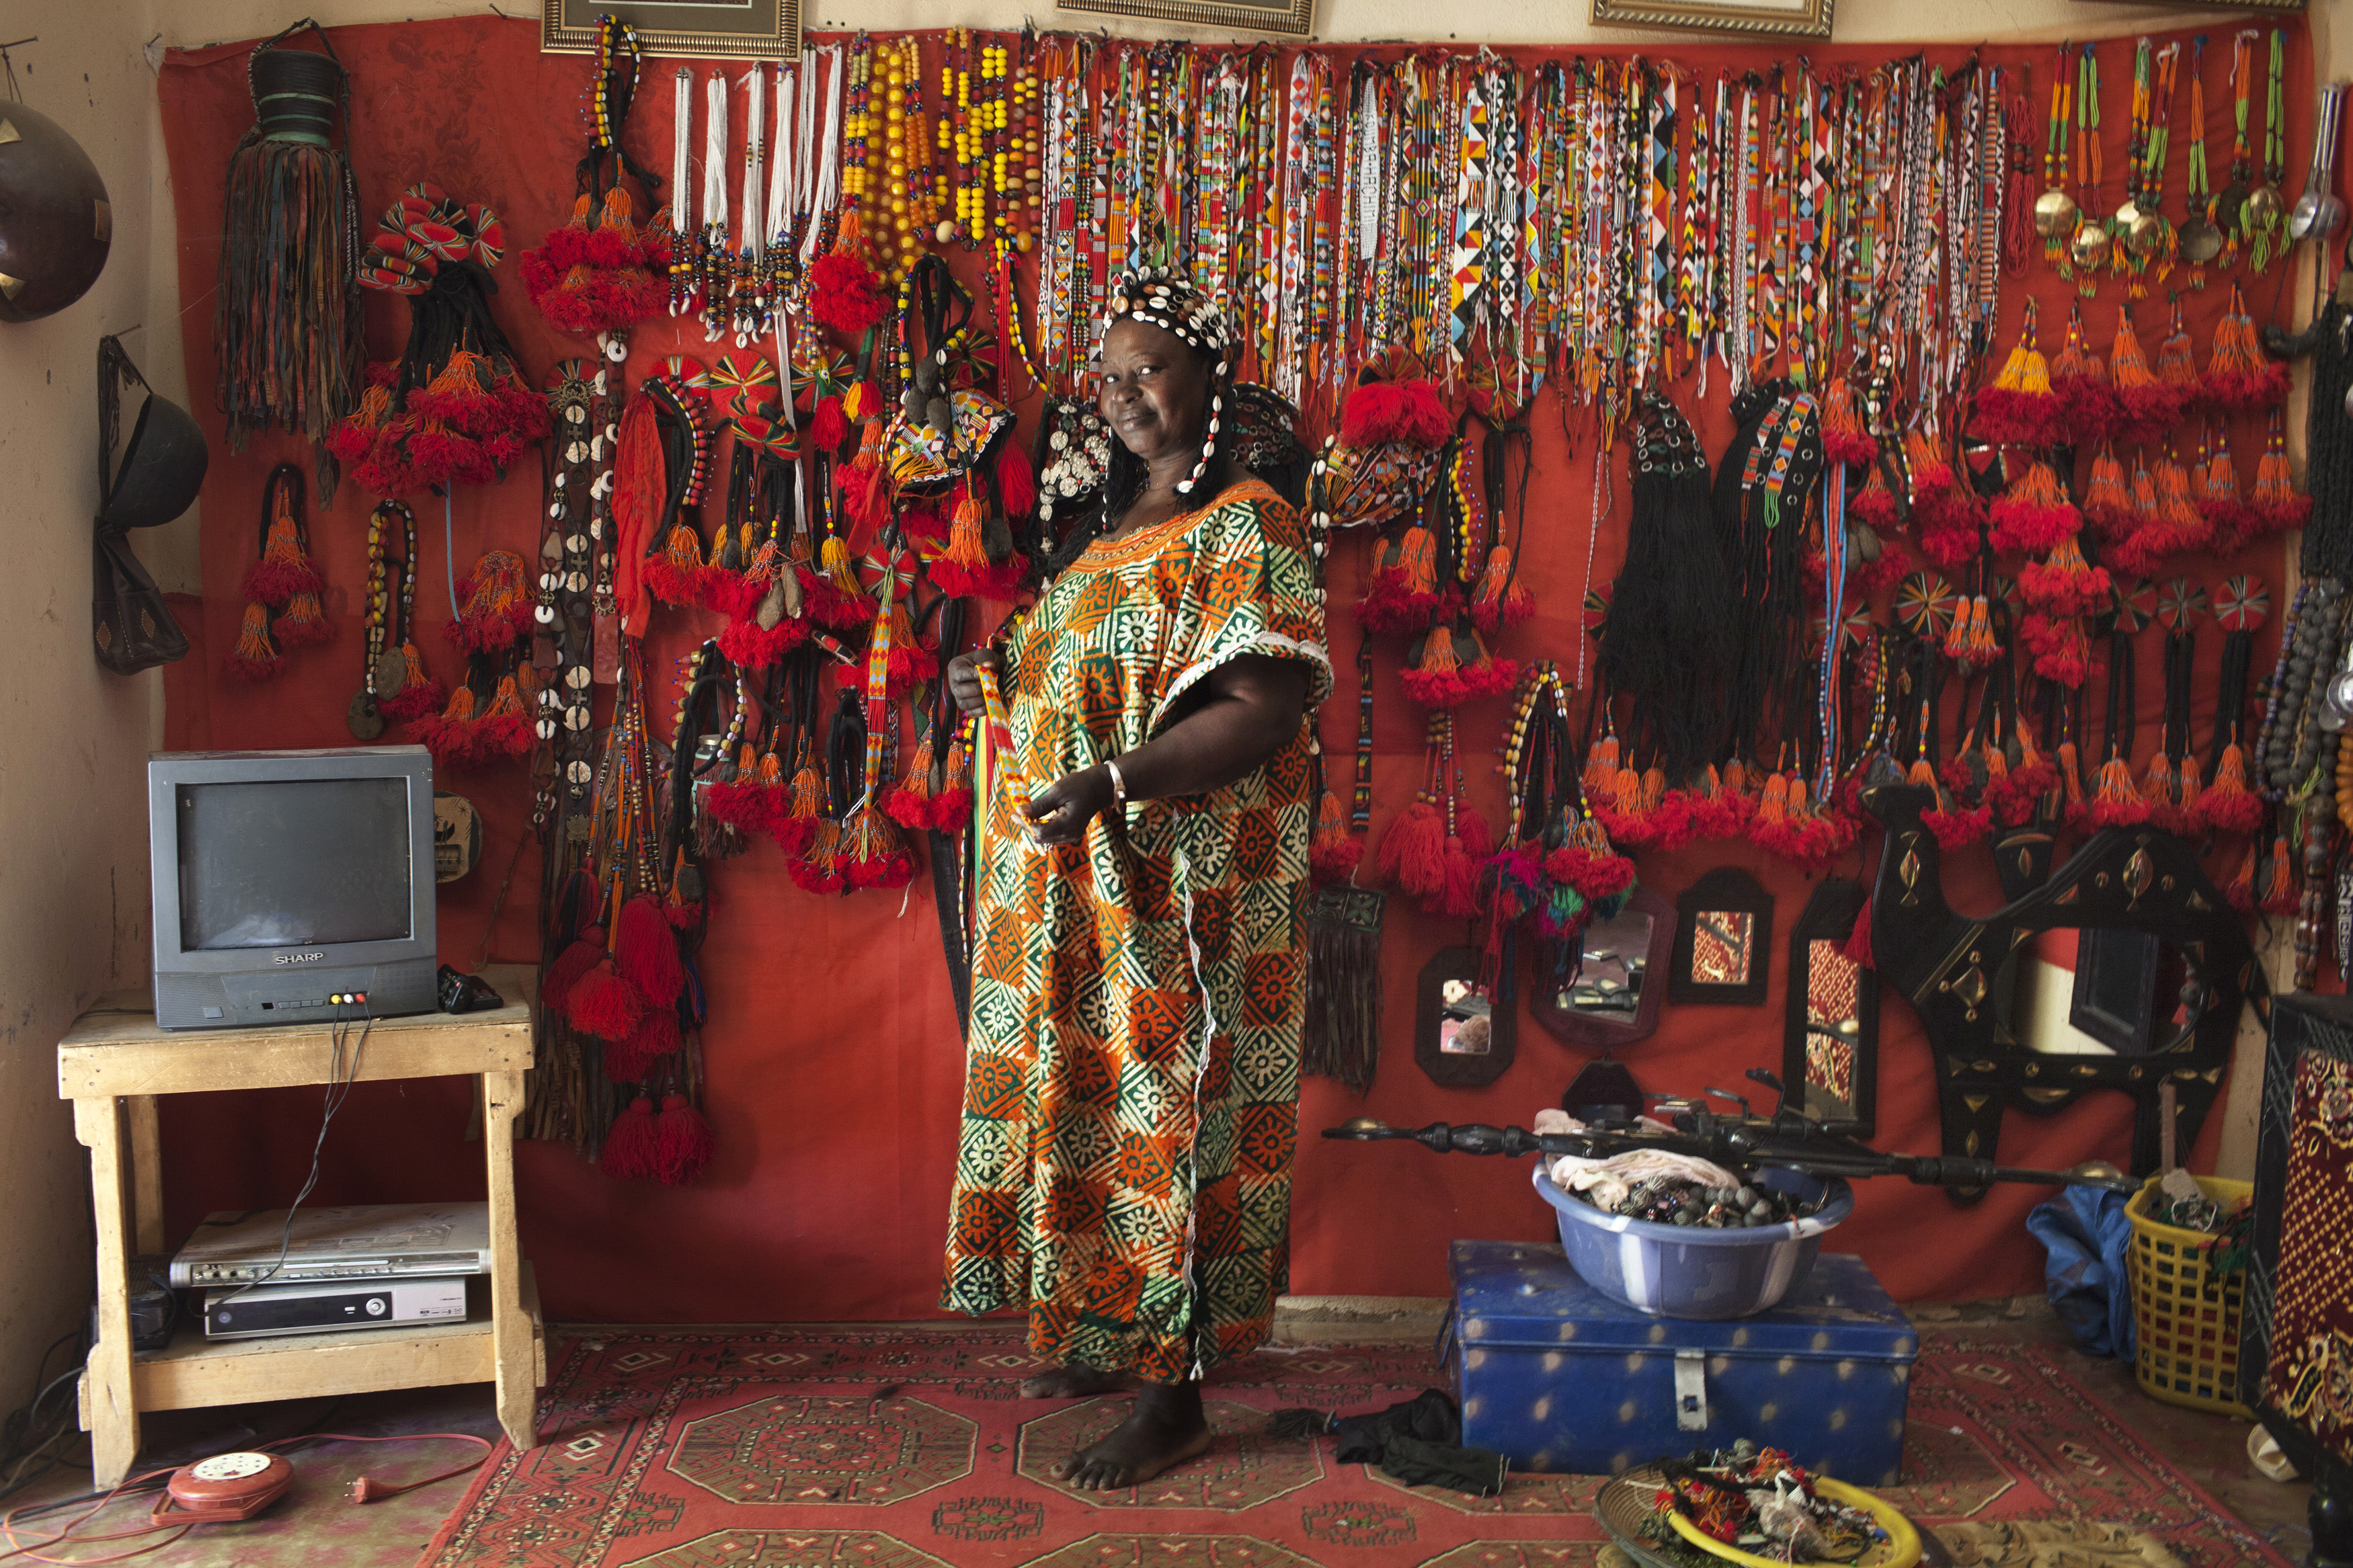 Hally Bara, an artisan, poses for a picture in front of traditional Songhai and Tuareg headdresses and jewelry she made at the store in her house in Gao, Mali, March 6, 2013. Radical Islamist group MUJAO placed limitations on the wearing of traditional women's headdresses during their nine-month reign in Gao, which ended in January with the arrival of French and Malian troops. The headdresses, made of beads, gemstones, fabric and fake hair and traditionally worn by elites for special occasions, were criticised by MUJAO who said they were not Islamic enough. Issues surrounding the treatment of women are receiving special attention on March 8, which marks International Women's Day. Picture taken March 6, 2013. REUTERS/Joe Penney (MALI - Tags: SOCIETY RELIGION)  ATTENTION EDITORS: PICTURE 16 OF 16 FOR PACKAGE 'HEADDRESSES OF GAO'. SEARCH 'HEADDRESSES PENNEY' FOR ALL IMAGES - GM1E9381BSB01